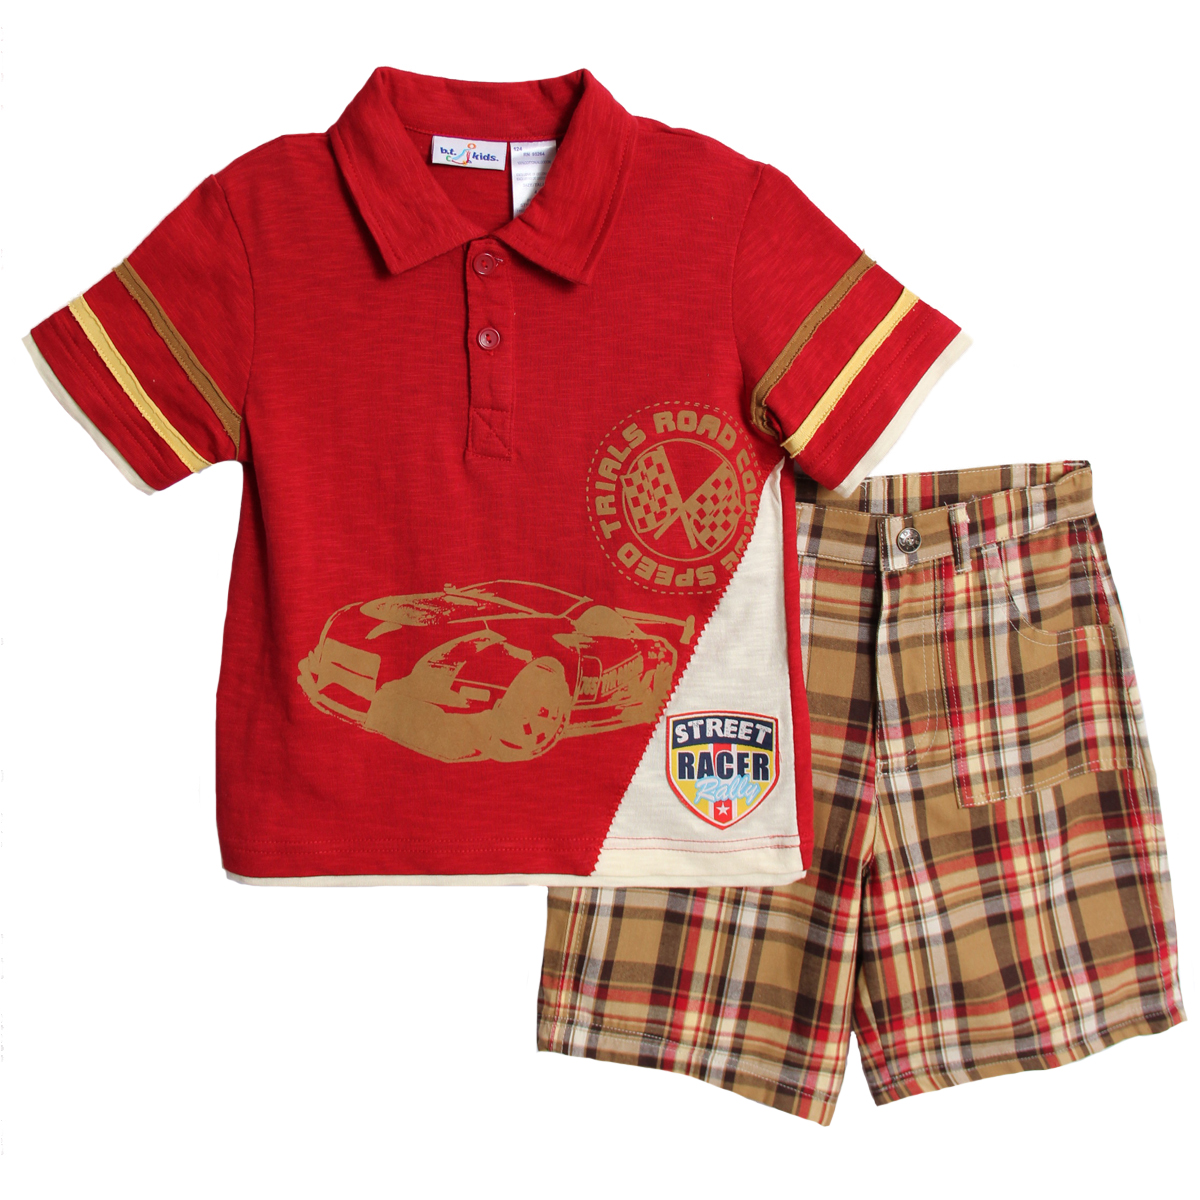 B. T. Kids Boys (4-7) 2 pc red polo racing shirt and plaid shorts set at Sears.com